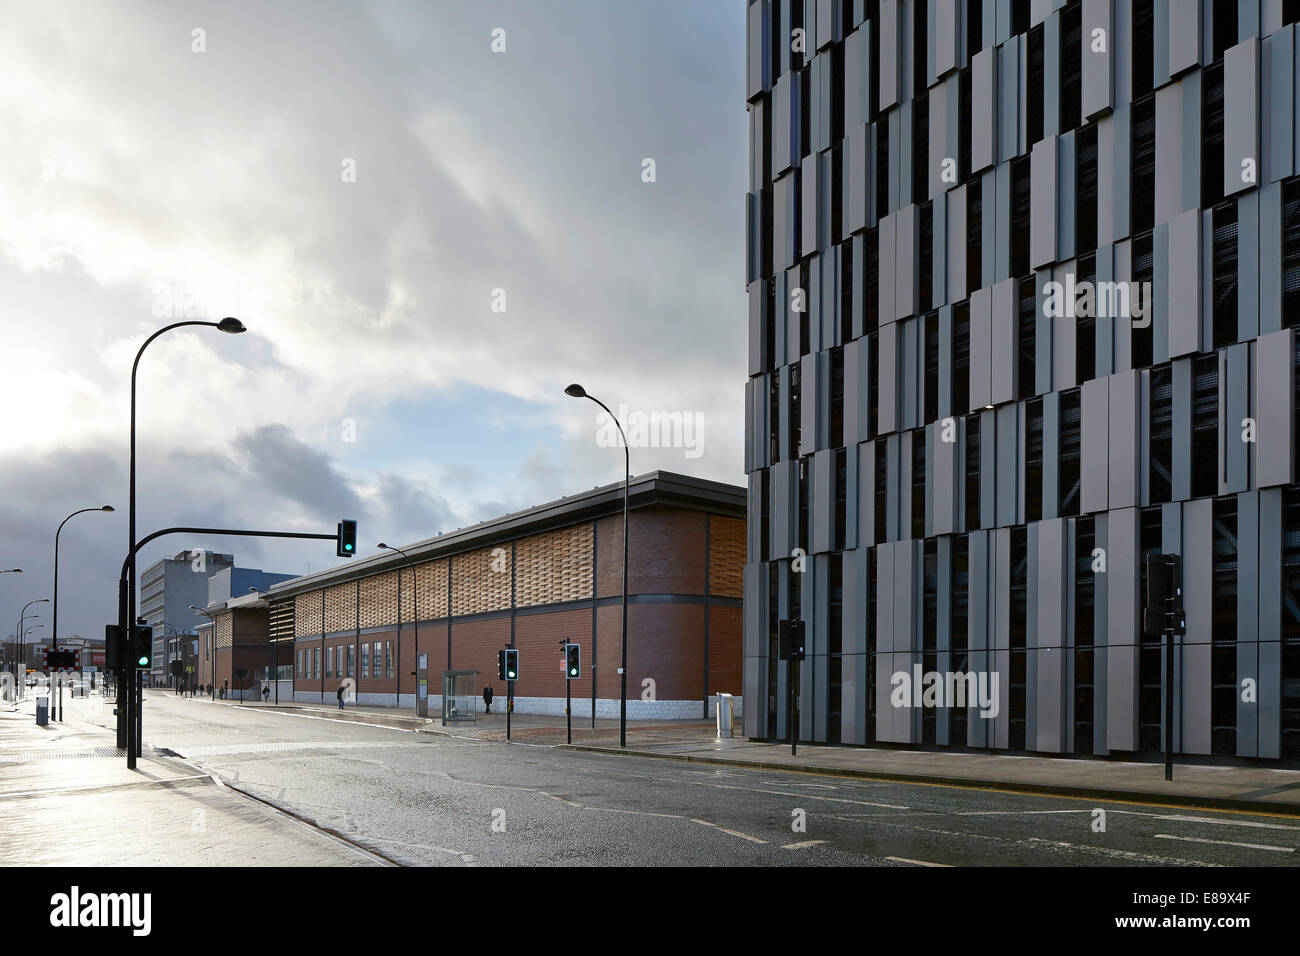 The moor market sheffield united kingdom architect for Jones architecture